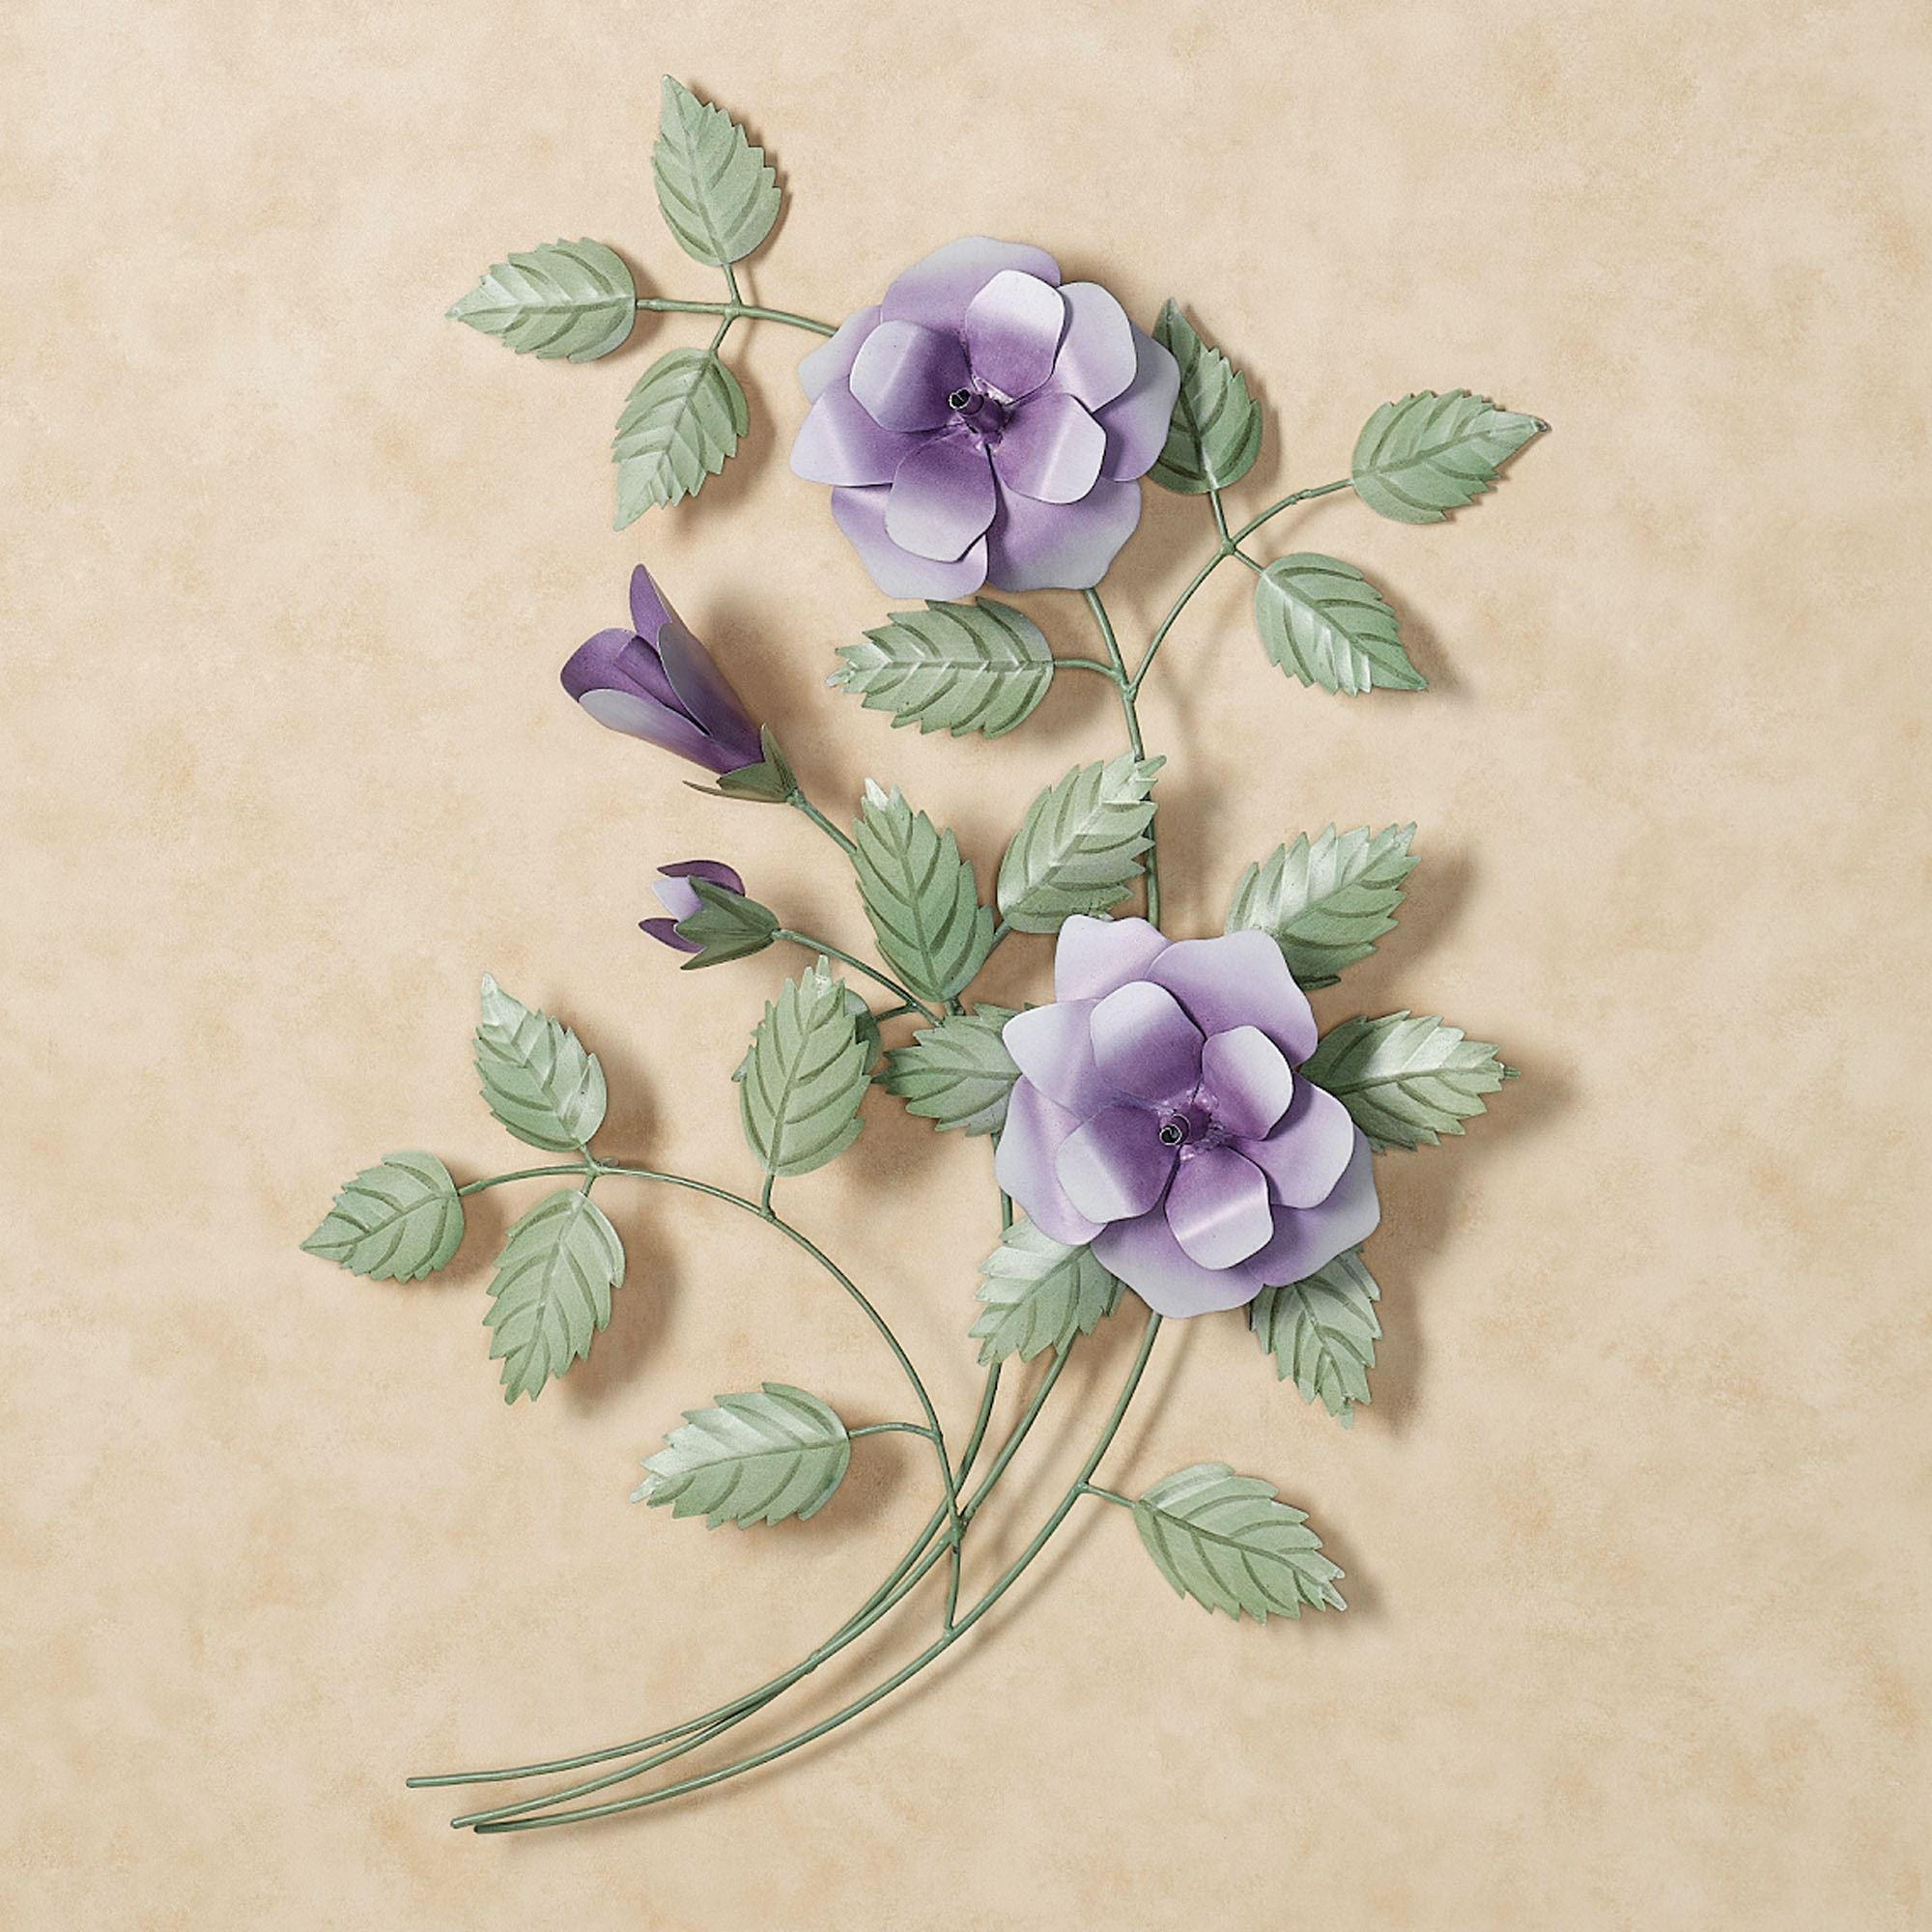 Flower Metal Wall Sculptures | Touch Of Class With Regard To Purple Flower Metal Wall Art (Image 11 of 20)